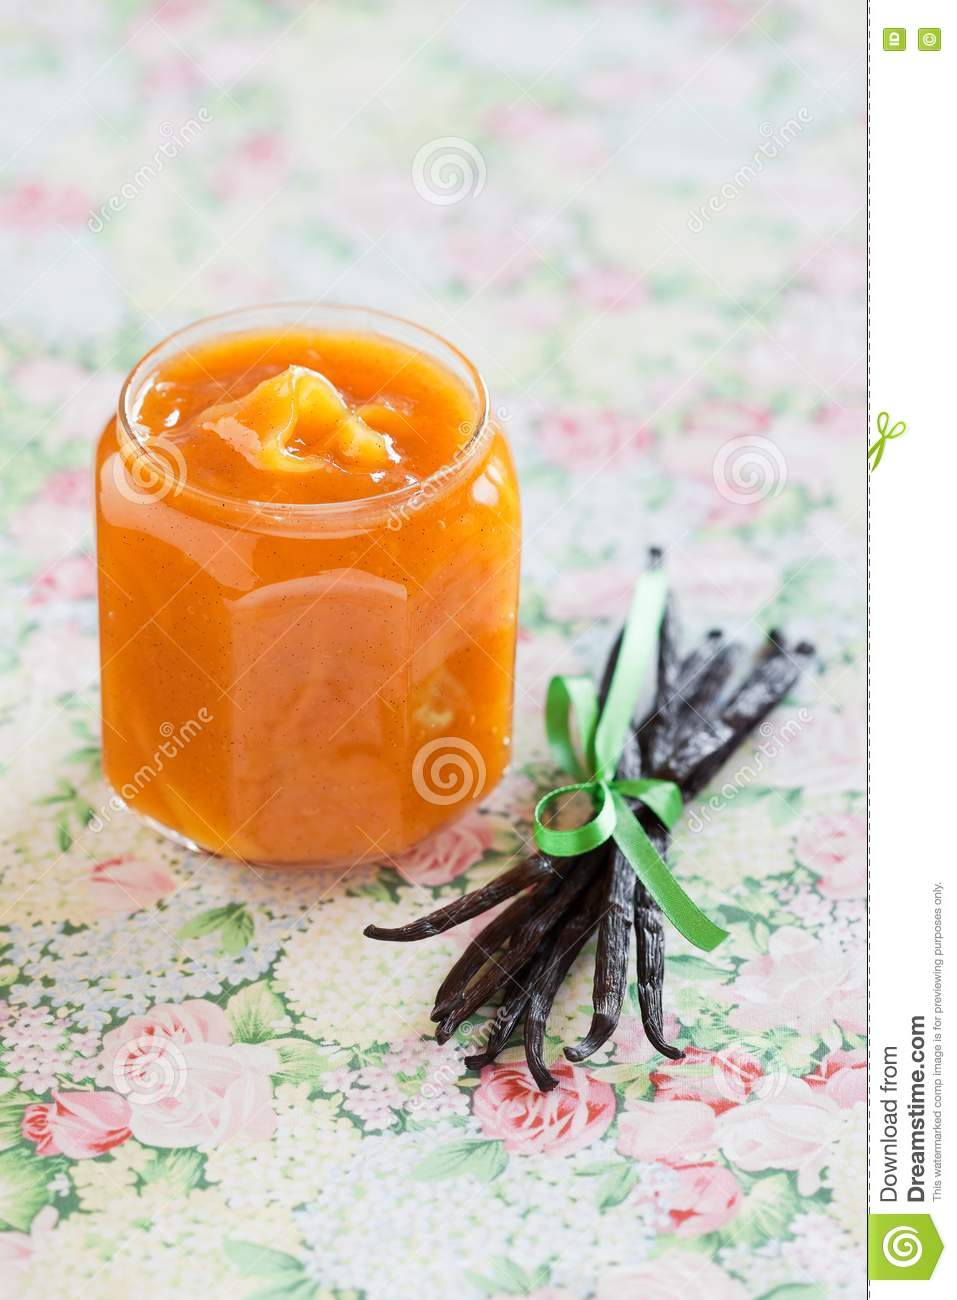 Mango And Vanilla Jam Royalty Free Stock Photography - Image: 23038297